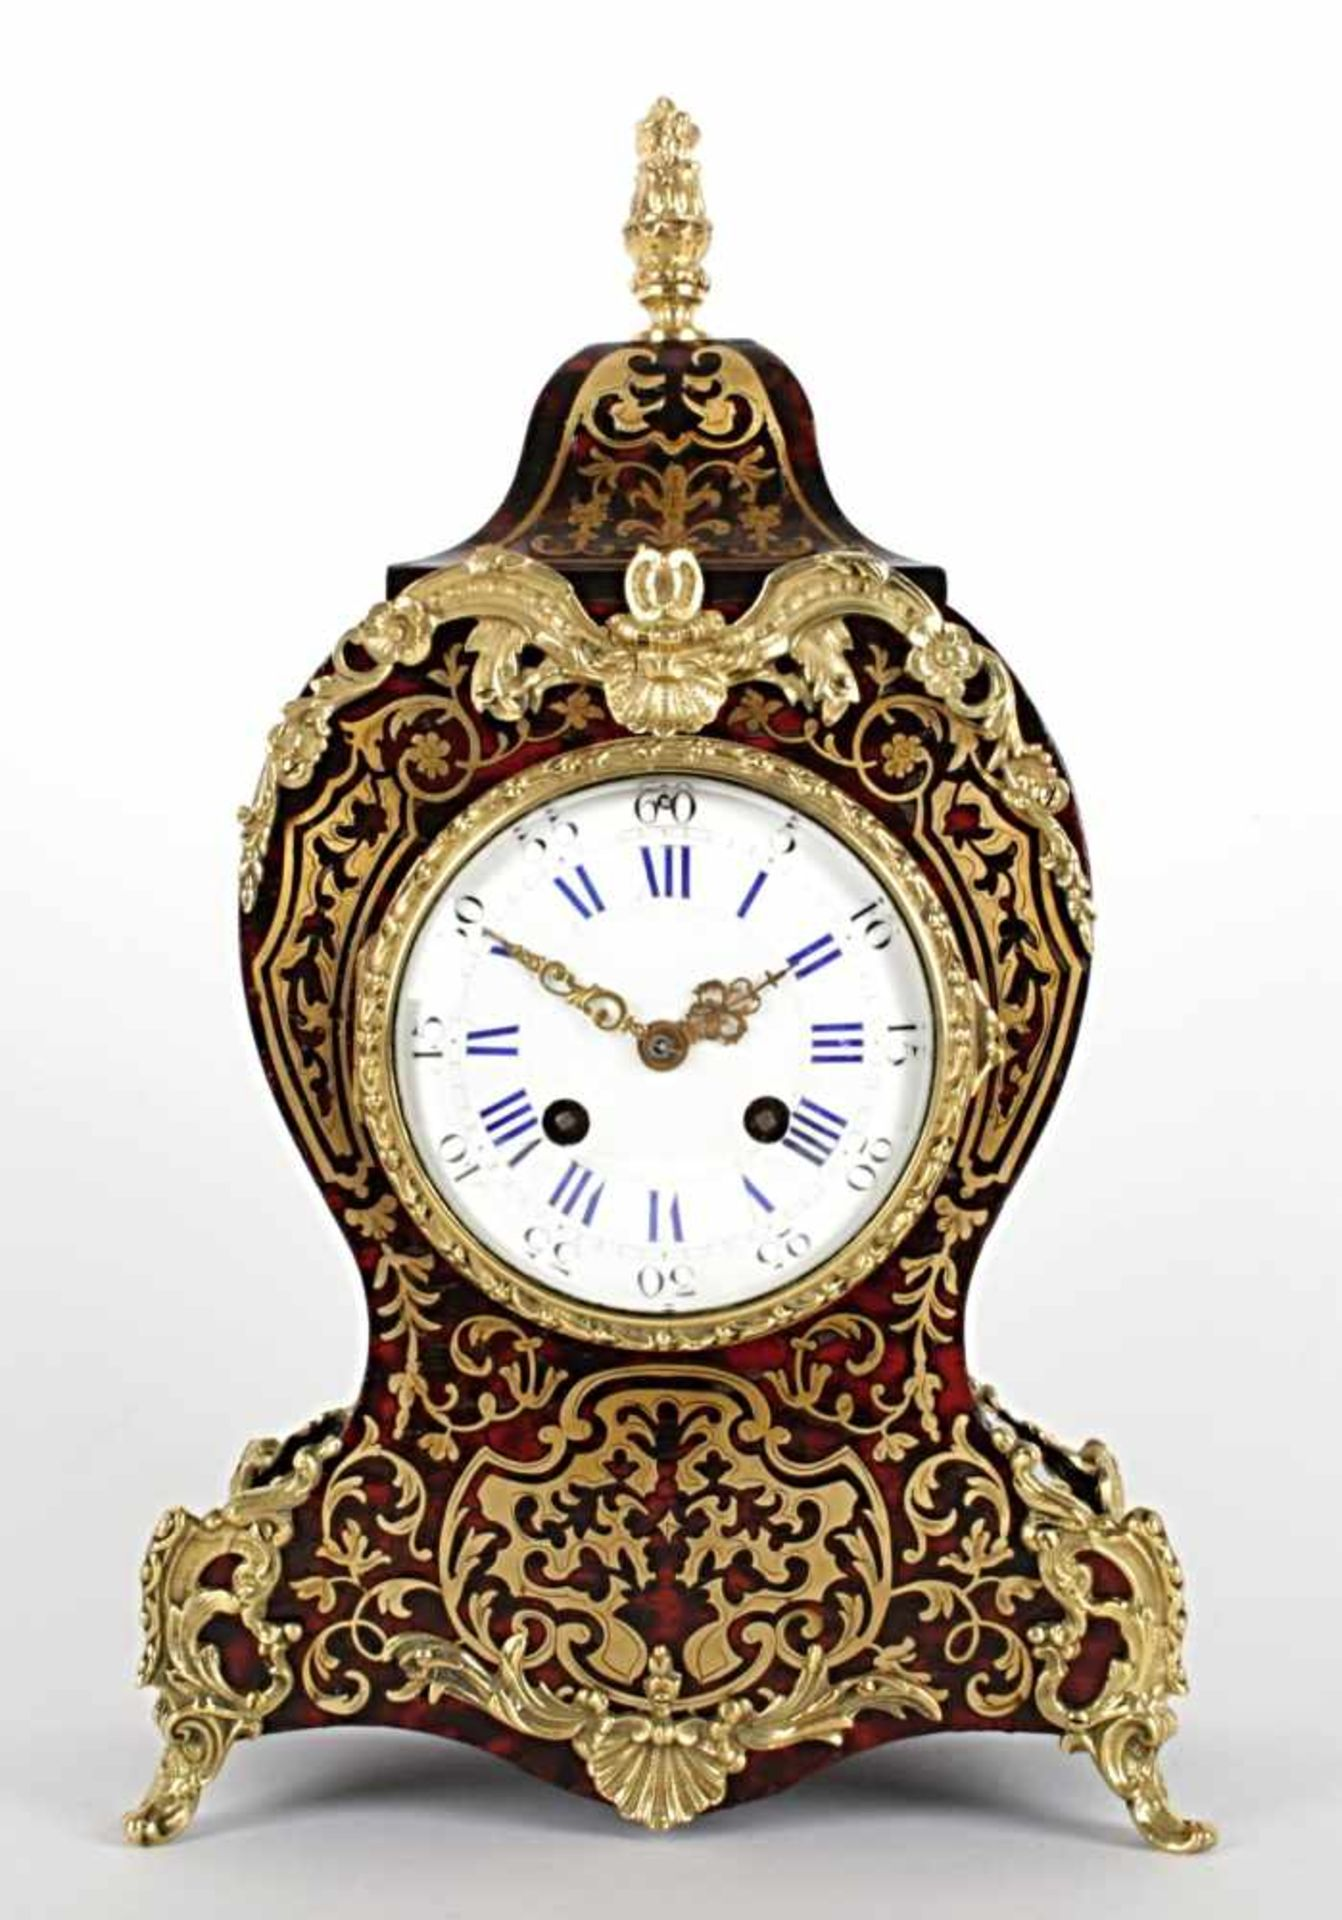 French table clock France, Paris, 2nd half of the 19th century, enamel dial, case inlaid with